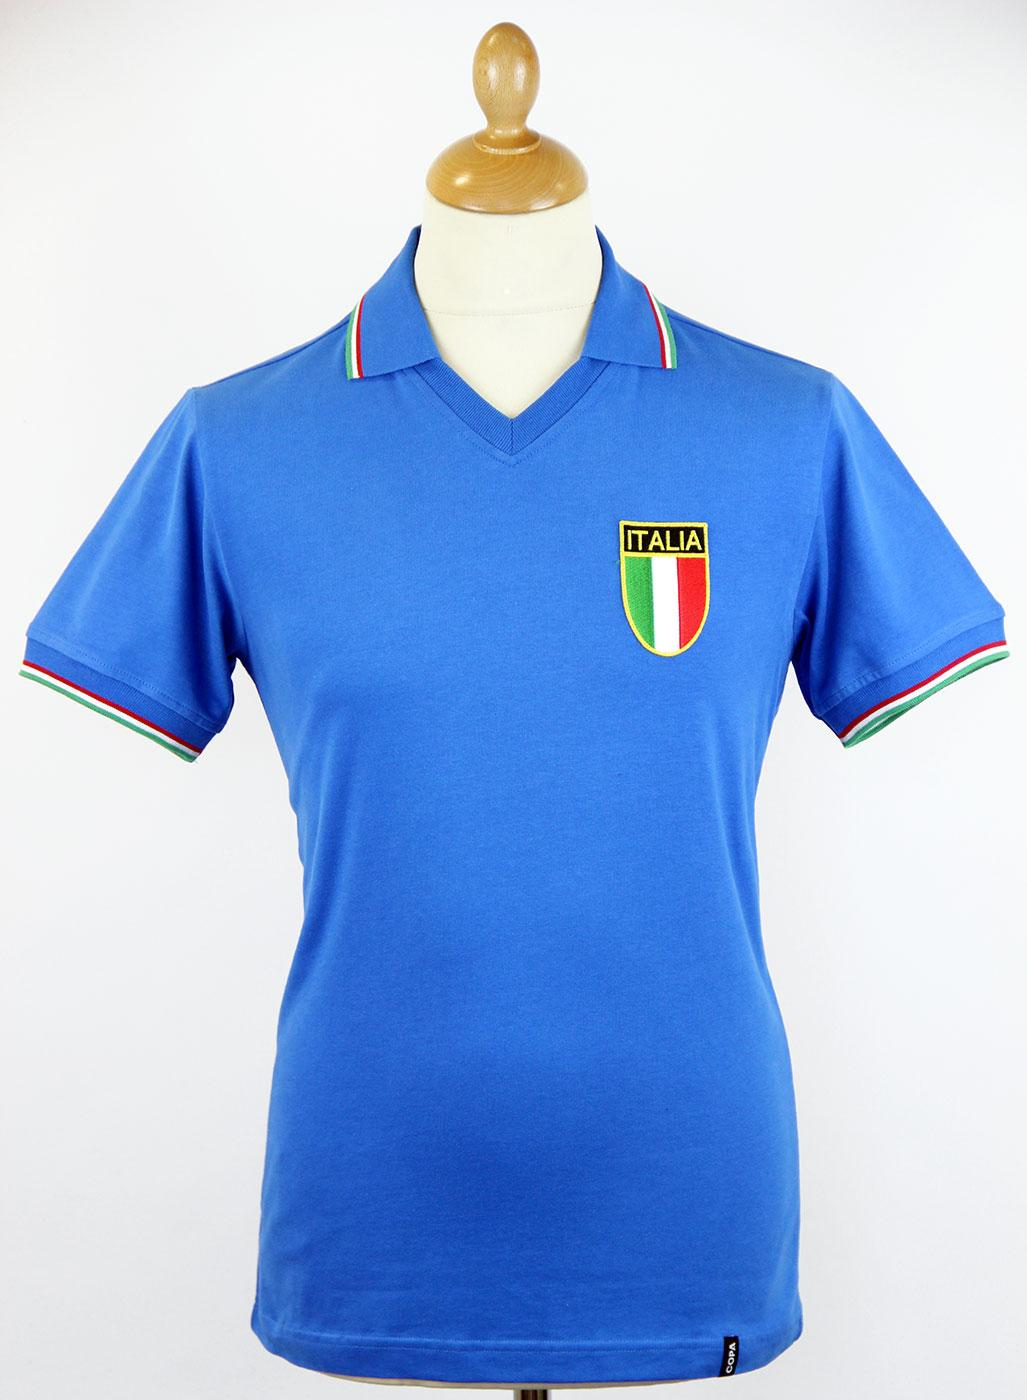 Italy COPA Retro 1982 World Cup Indie Football Top